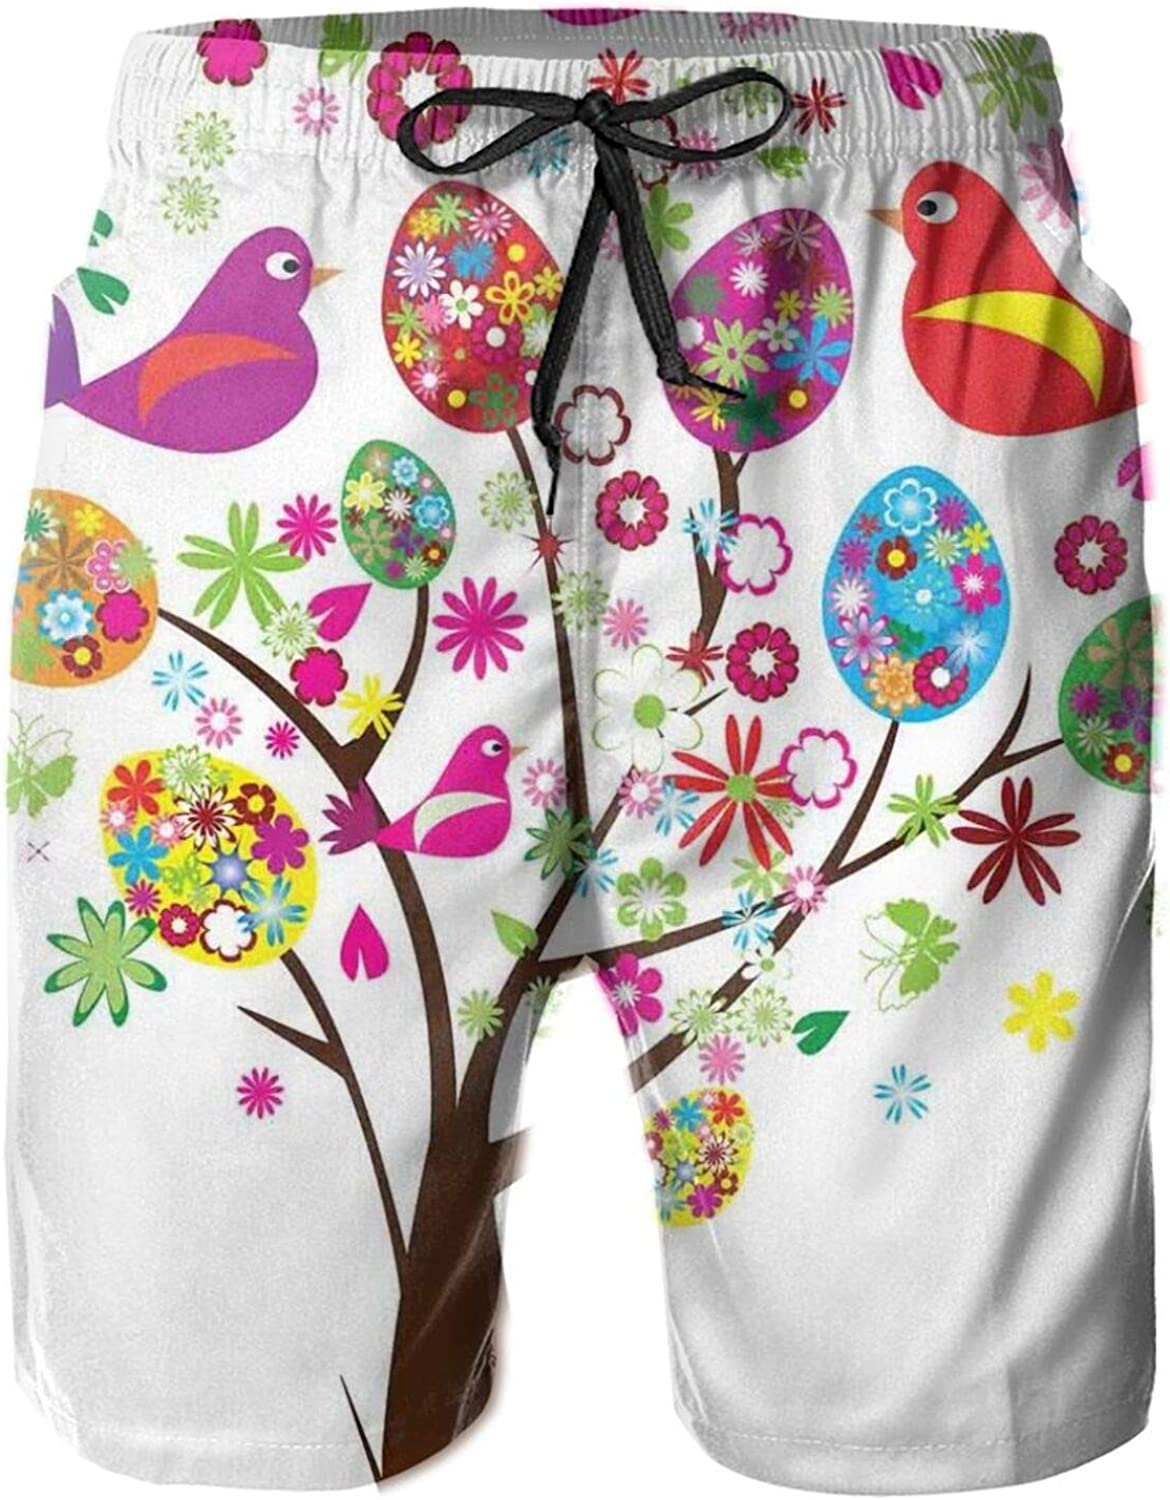 Ornate Easter Tree with Floral Eggs Love Birds Butterflies Joy Modern Artprint Home Swimming Trunks for Men Beach Shorts Casual Style,XL